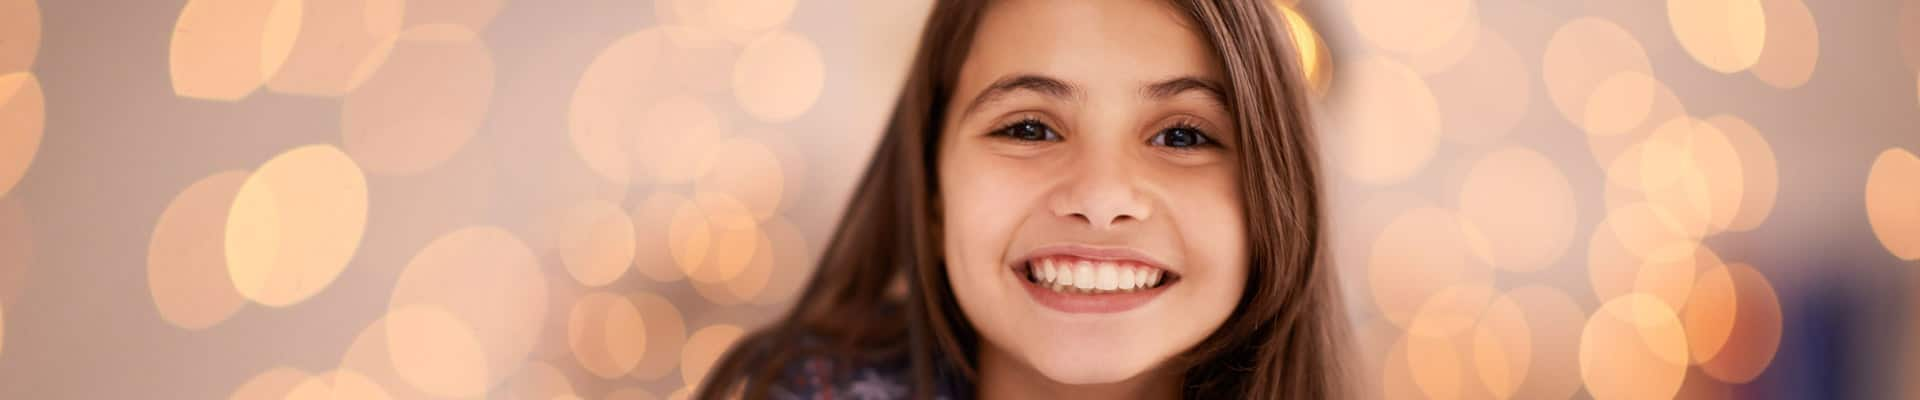 Invisalign for children Brace Connection in Downey, CA